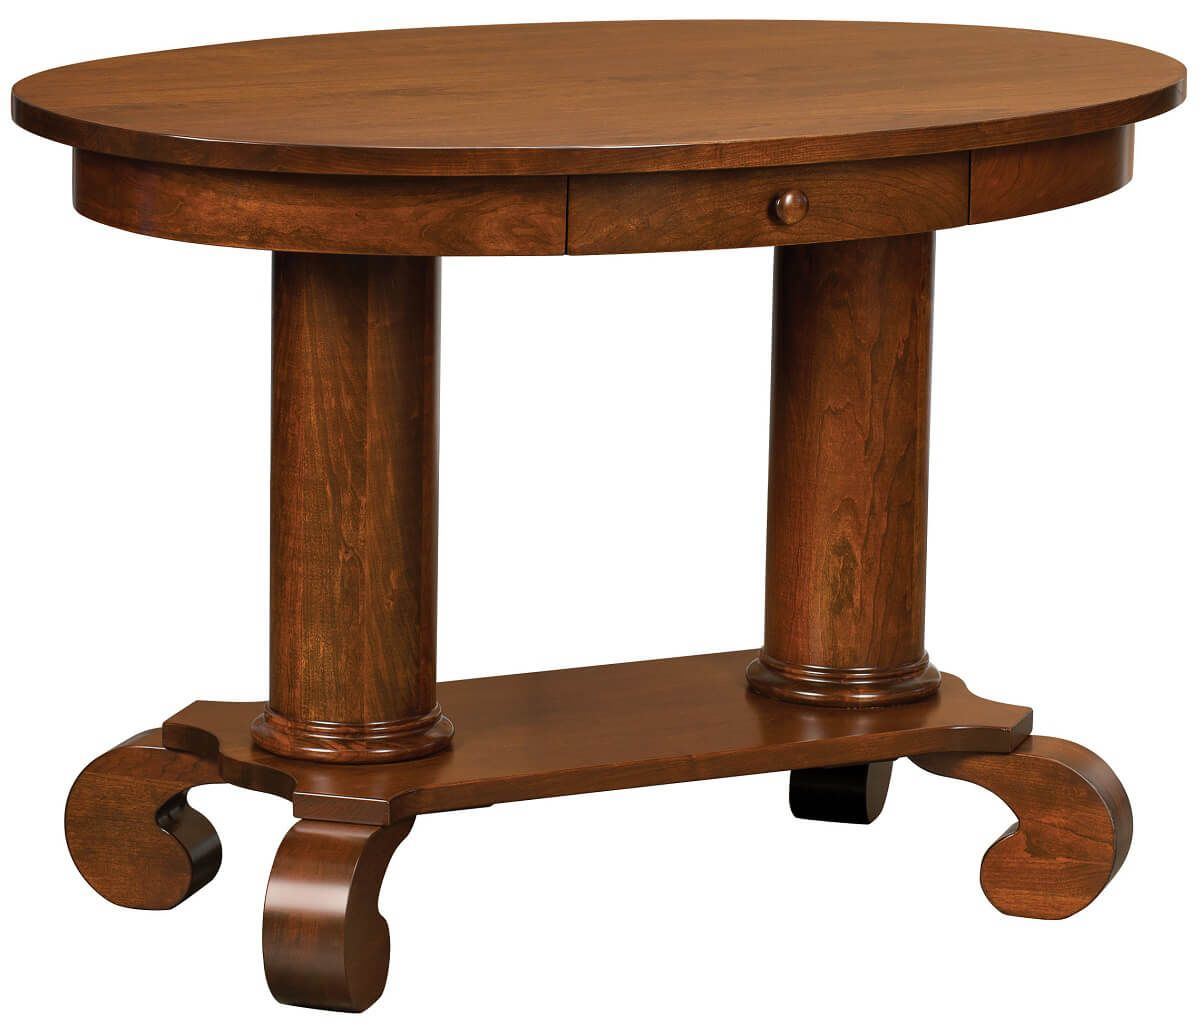 Lowell Entryway Table with drawer